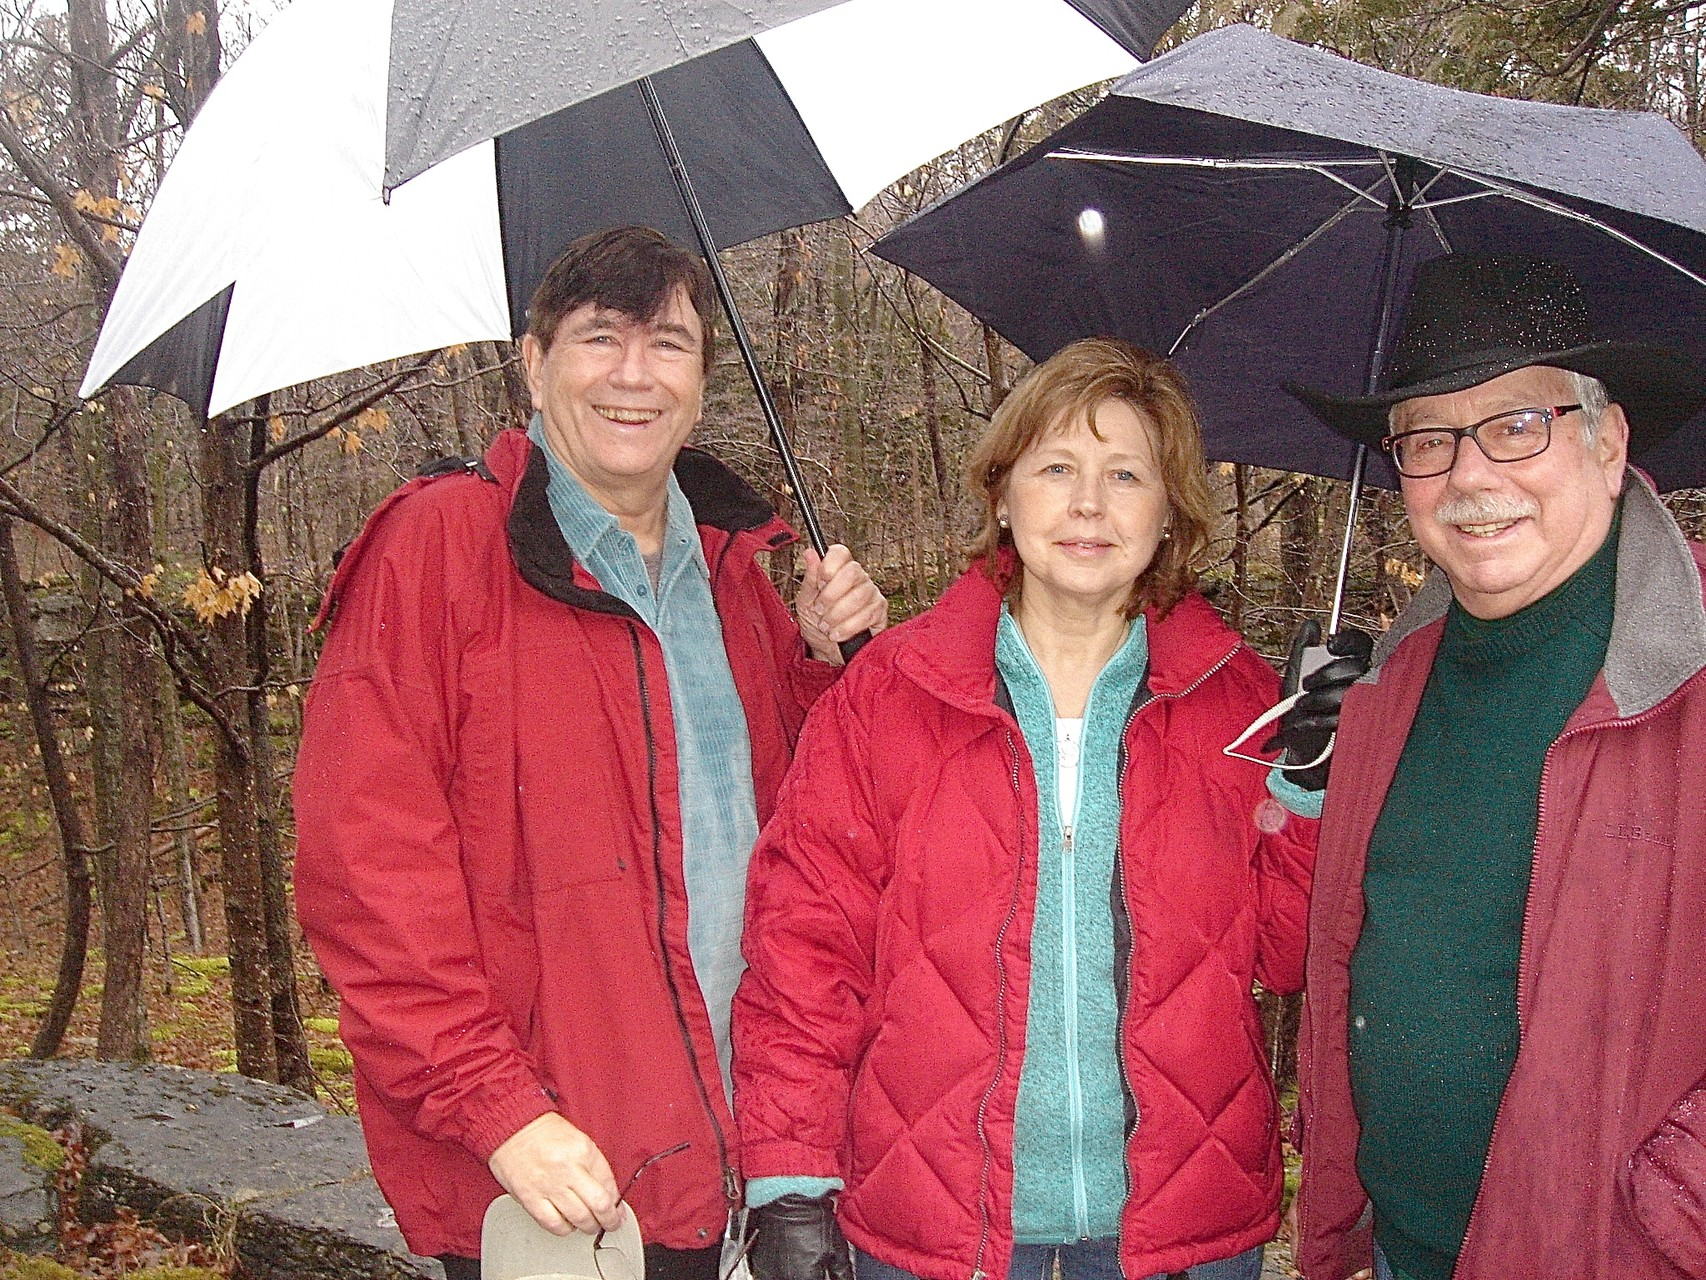 John, Barbara & Don at Clark Reservation, near Syracuse